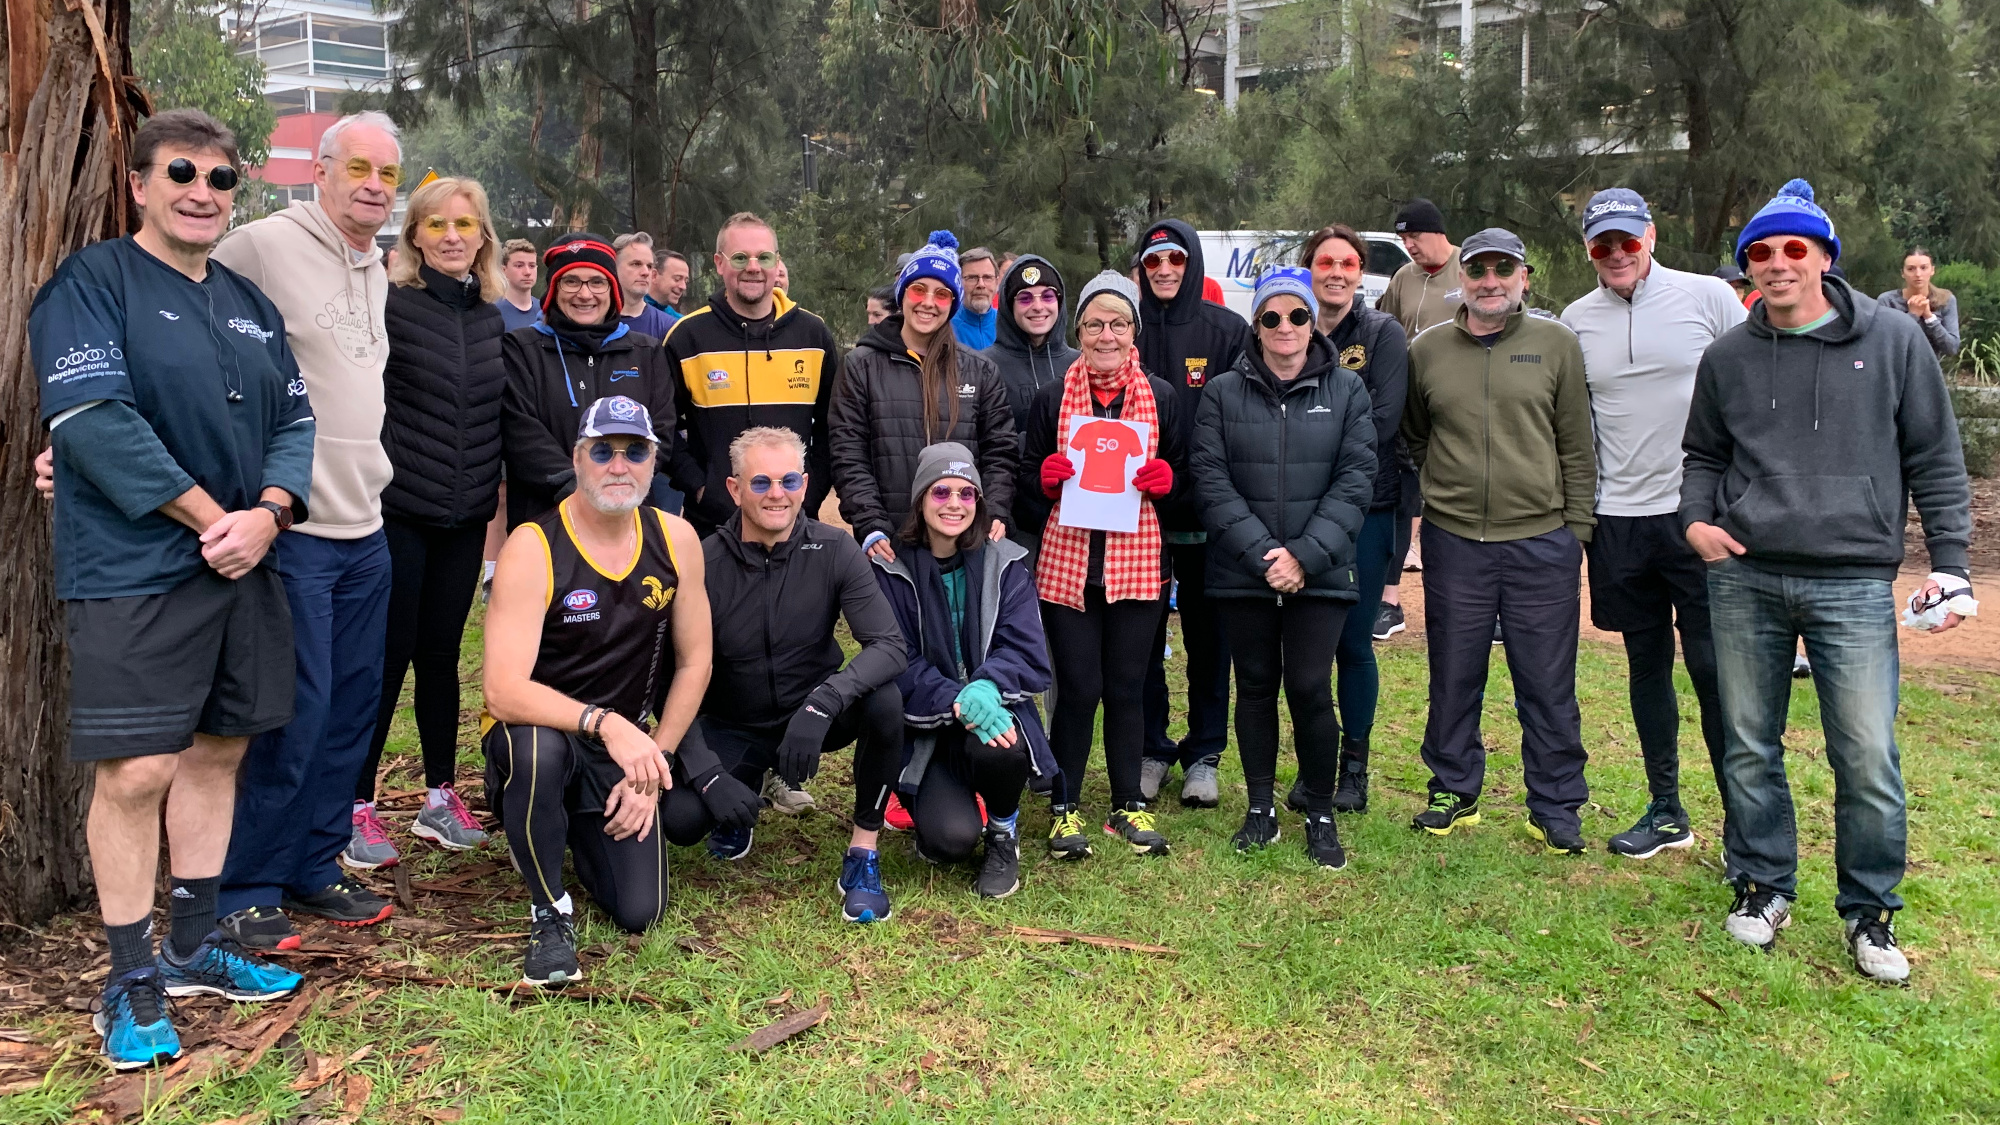 Fiona is wearing a grey beanie and a red-white checked scarf as she holds up the 50 parkruns milestone sign. She stands among a group of sixteen friends who are all wearing novelty glasses that resemble Fiona's round-rimmed spectacles.